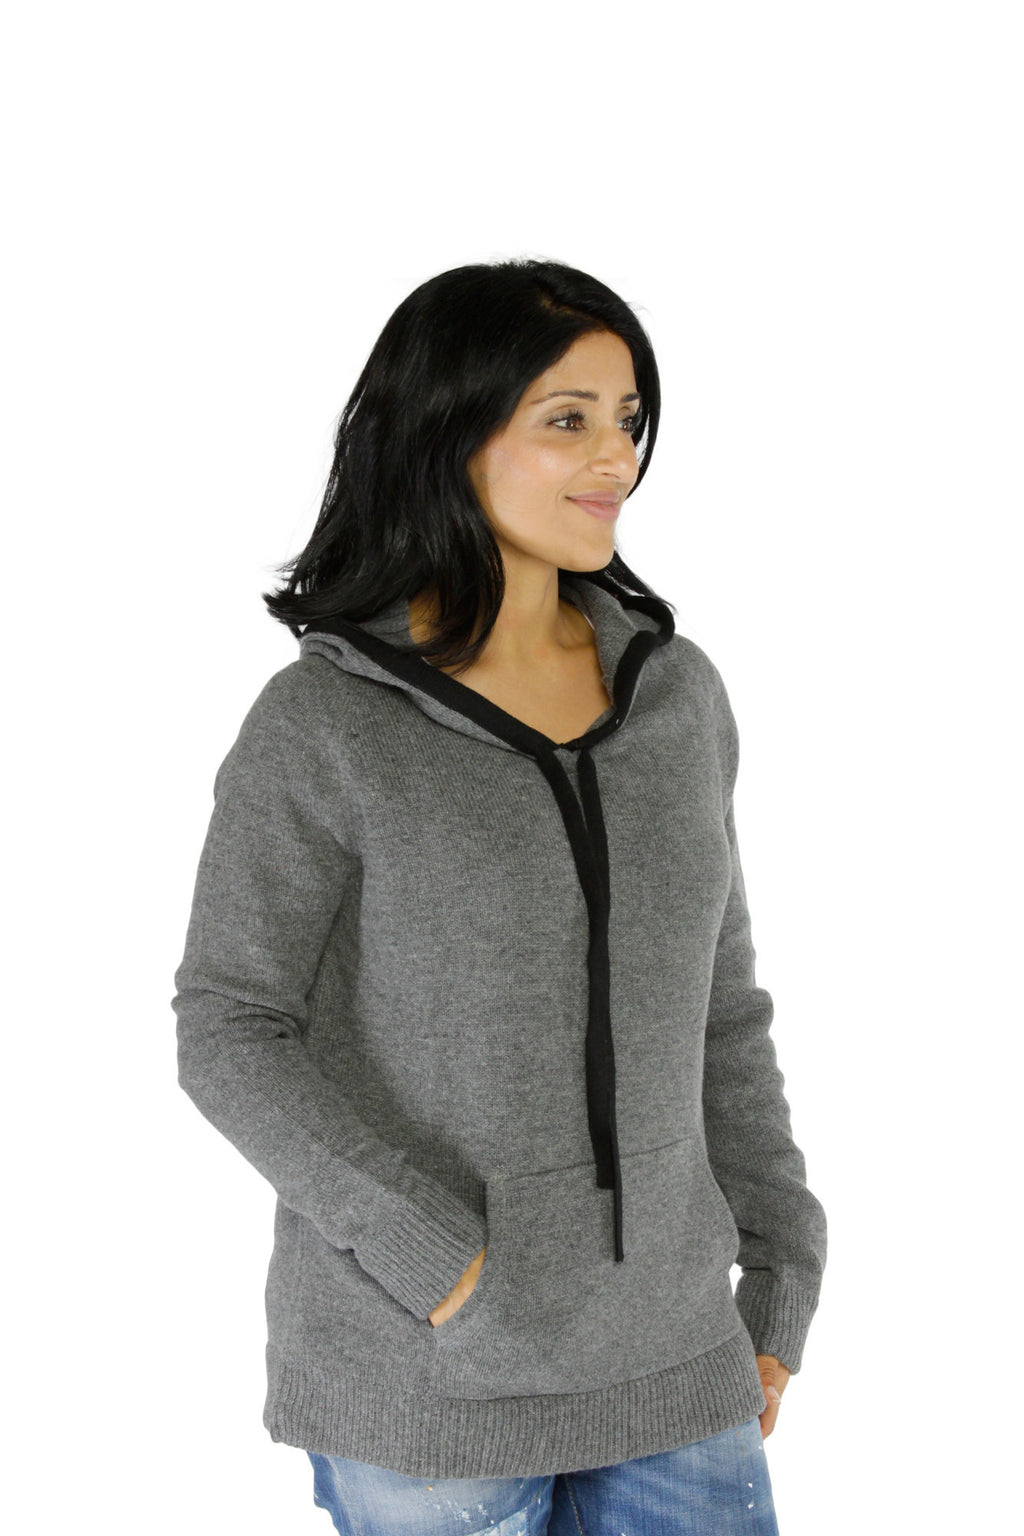 Unisex Cashmere Hoodie Sweater